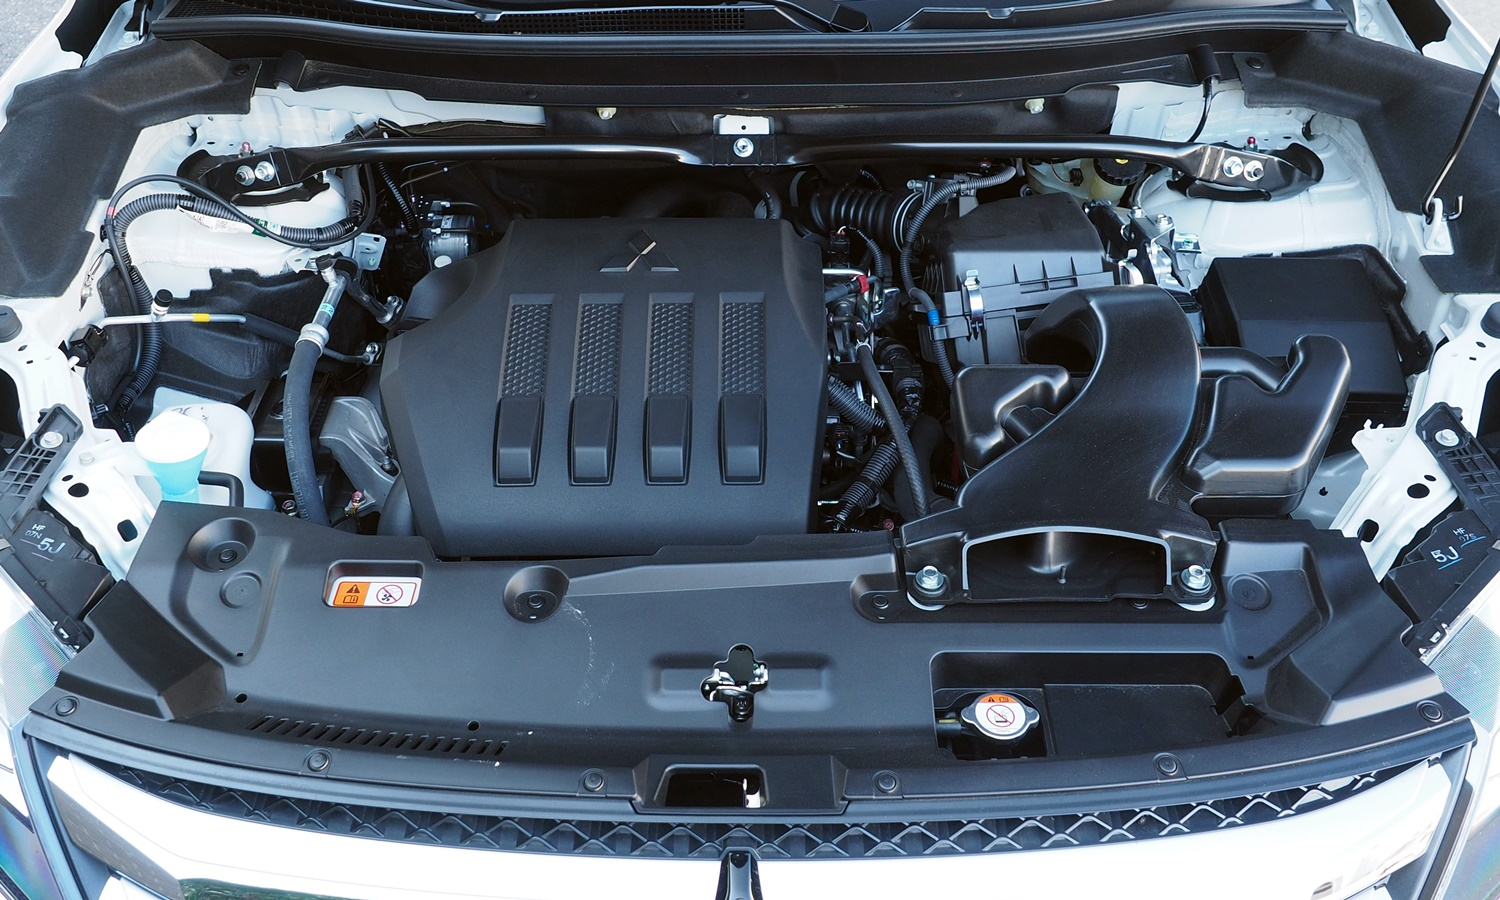 Mitsubishi Eclipse Cross Photos: 2018 Mitsubishi Eclipse Cross engine